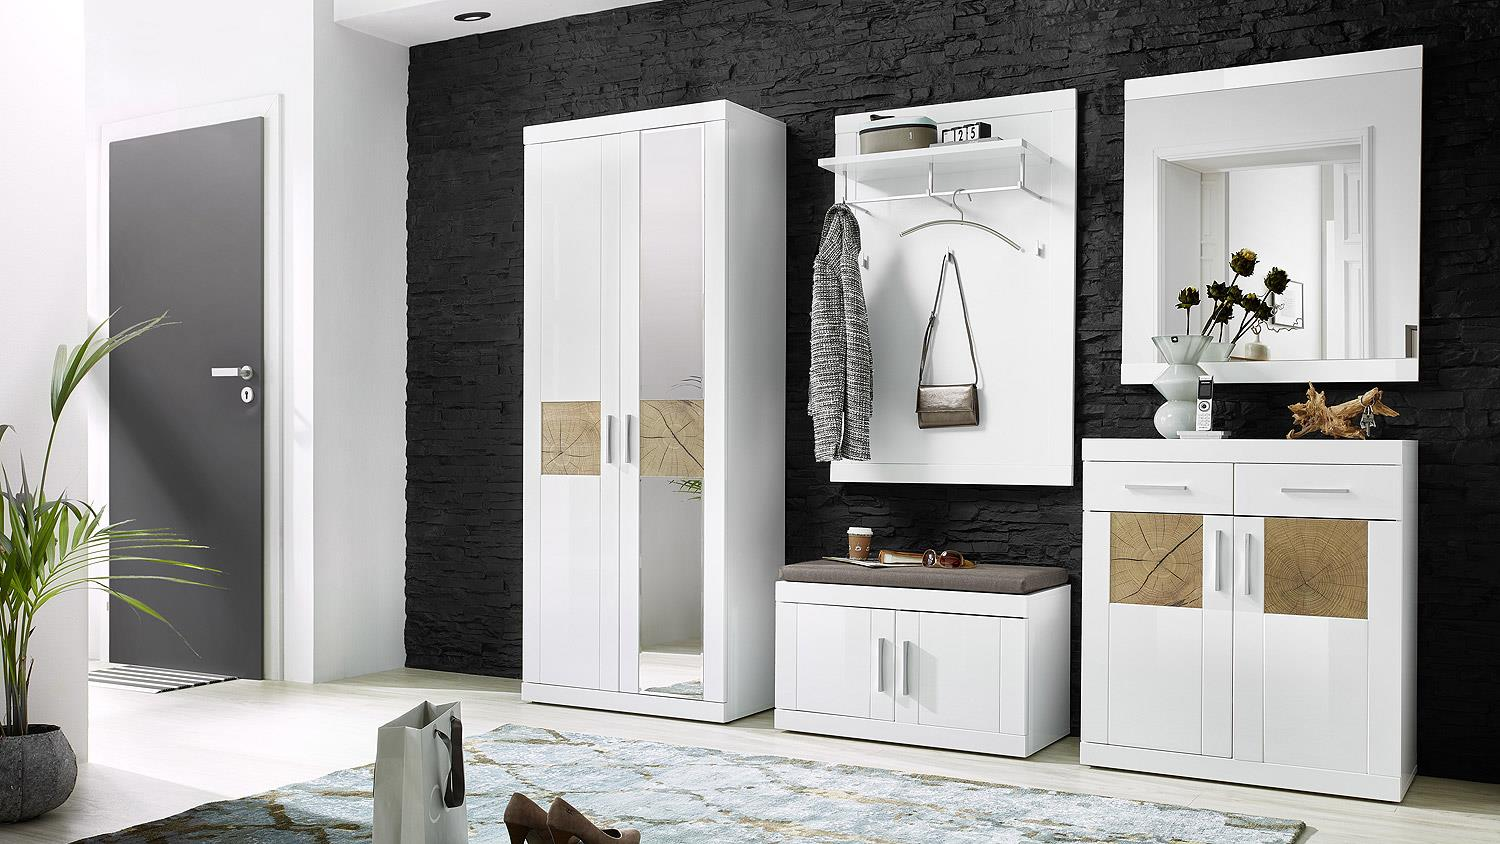 garderobe junos set in mdf wei hochglanz hirnholz. Black Bedroom Furniture Sets. Home Design Ideas